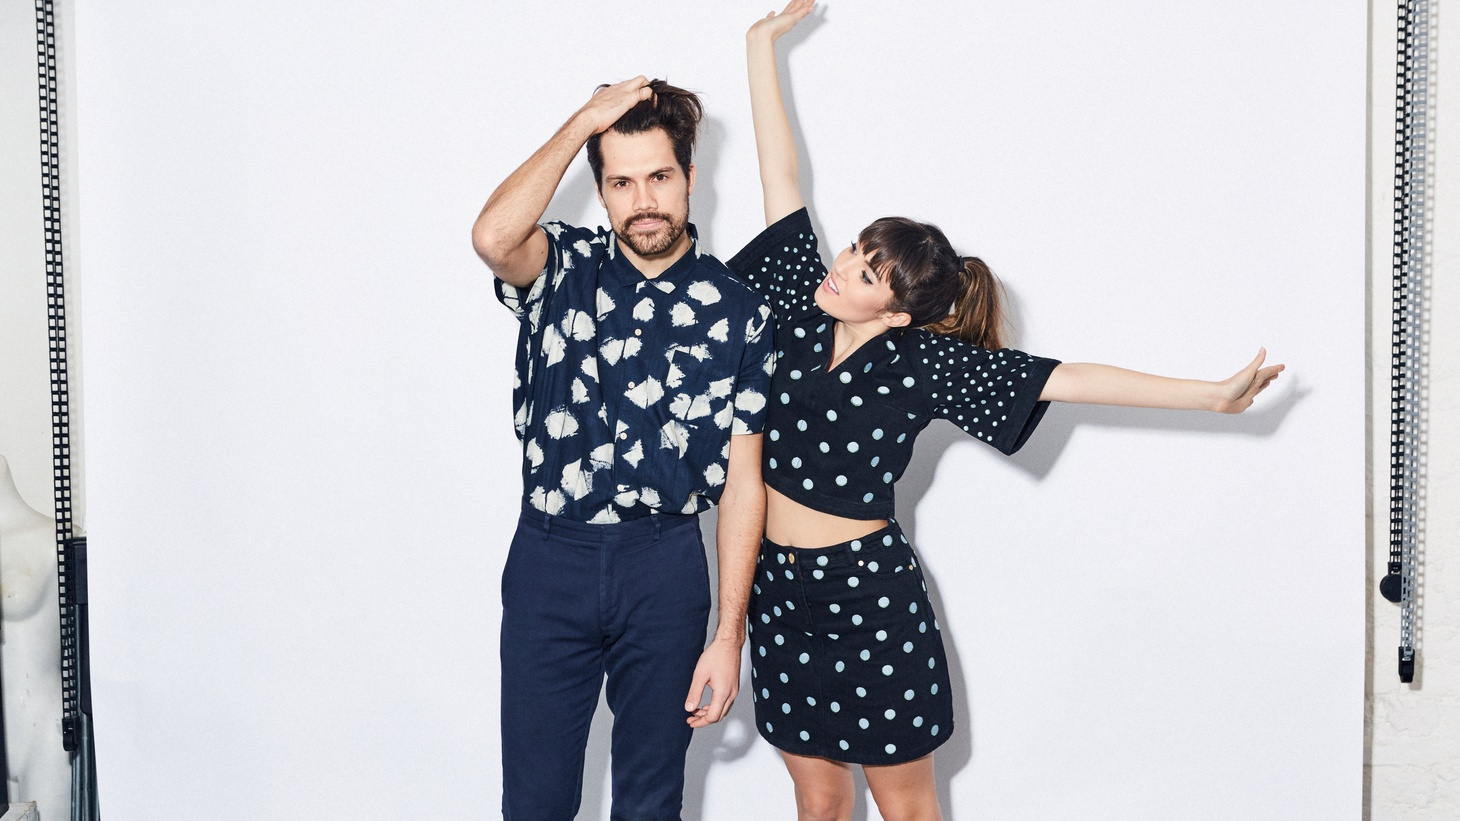 London duo Oh Wonder has been selling out venues worldwide and visits our studio before its headlining date at the Shrine Expo Hall.